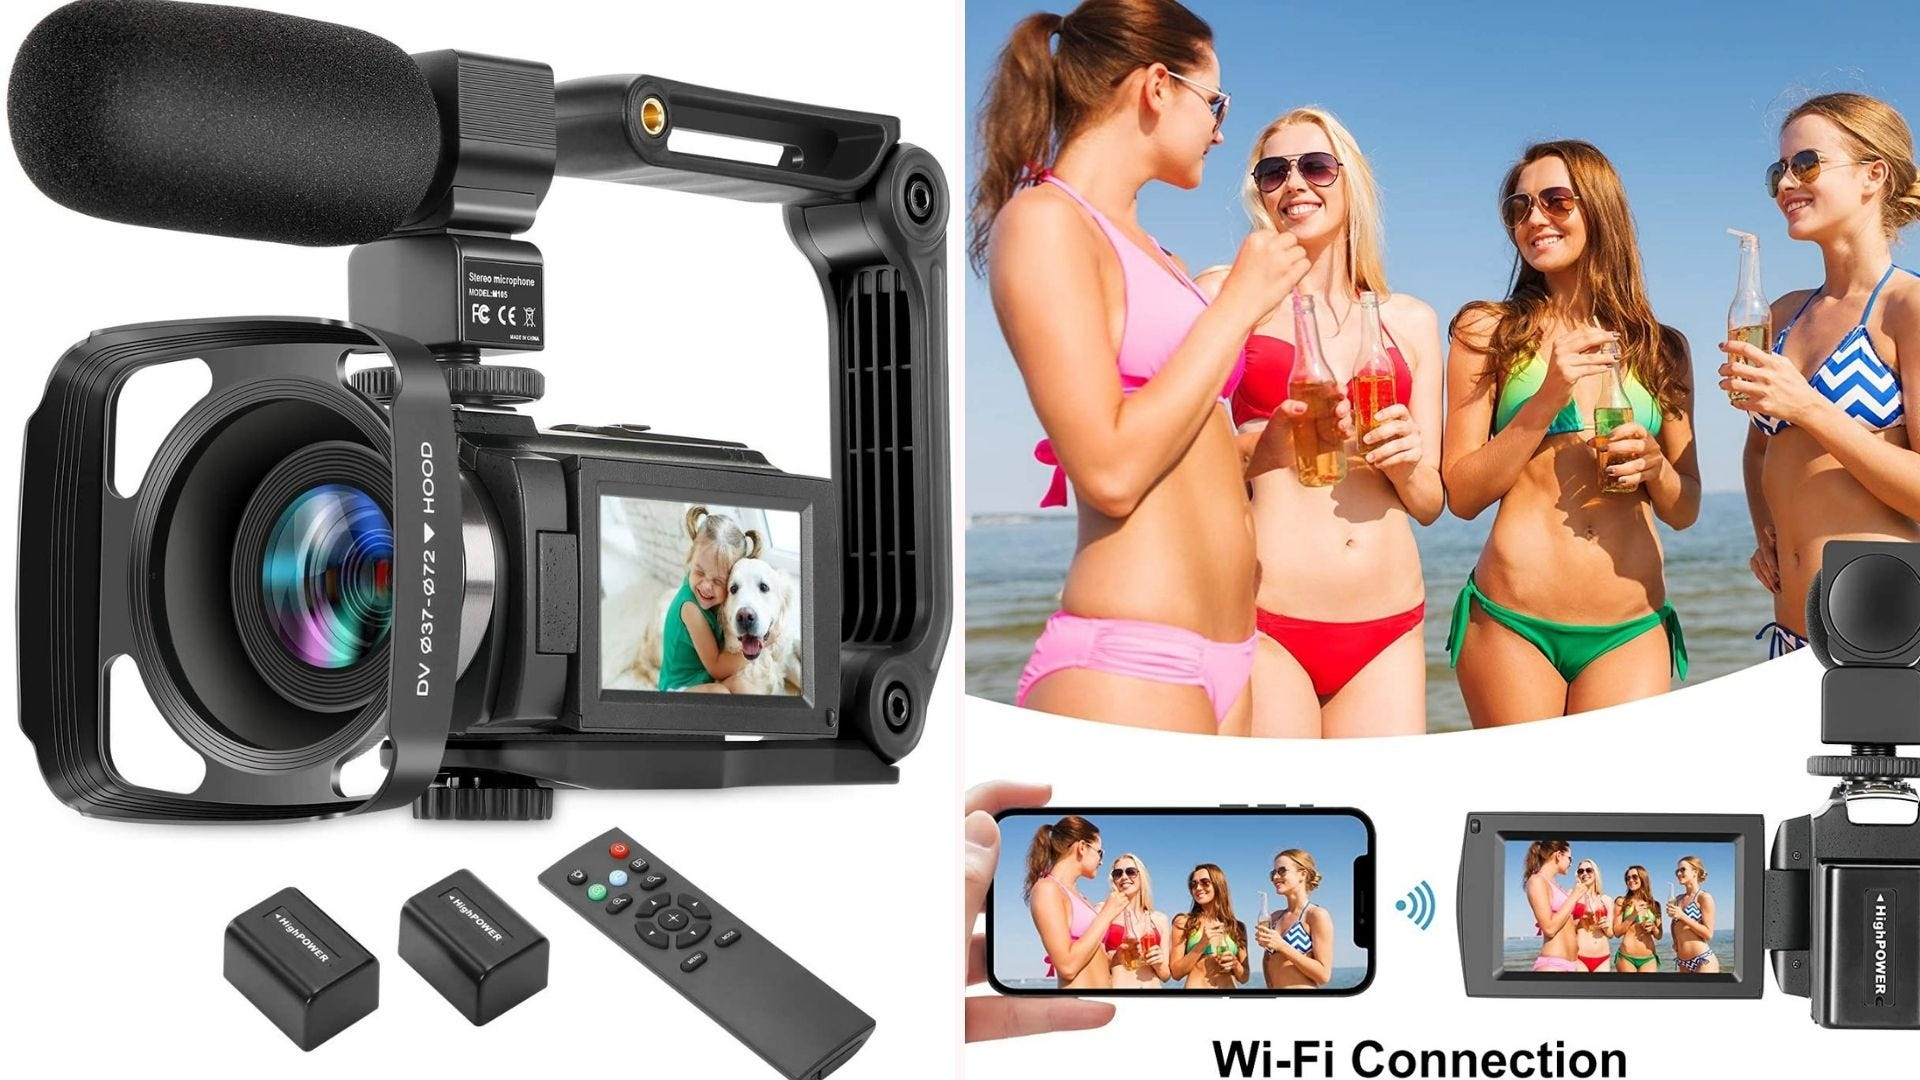 On the left, a black camera that features a large hood surrounding its lens, a three-inch screen on its left side, and a long external microphone directly above the lens. On the right, four women gather at the beach, demonstrating the camera's strong Wi-Fi connectivity.